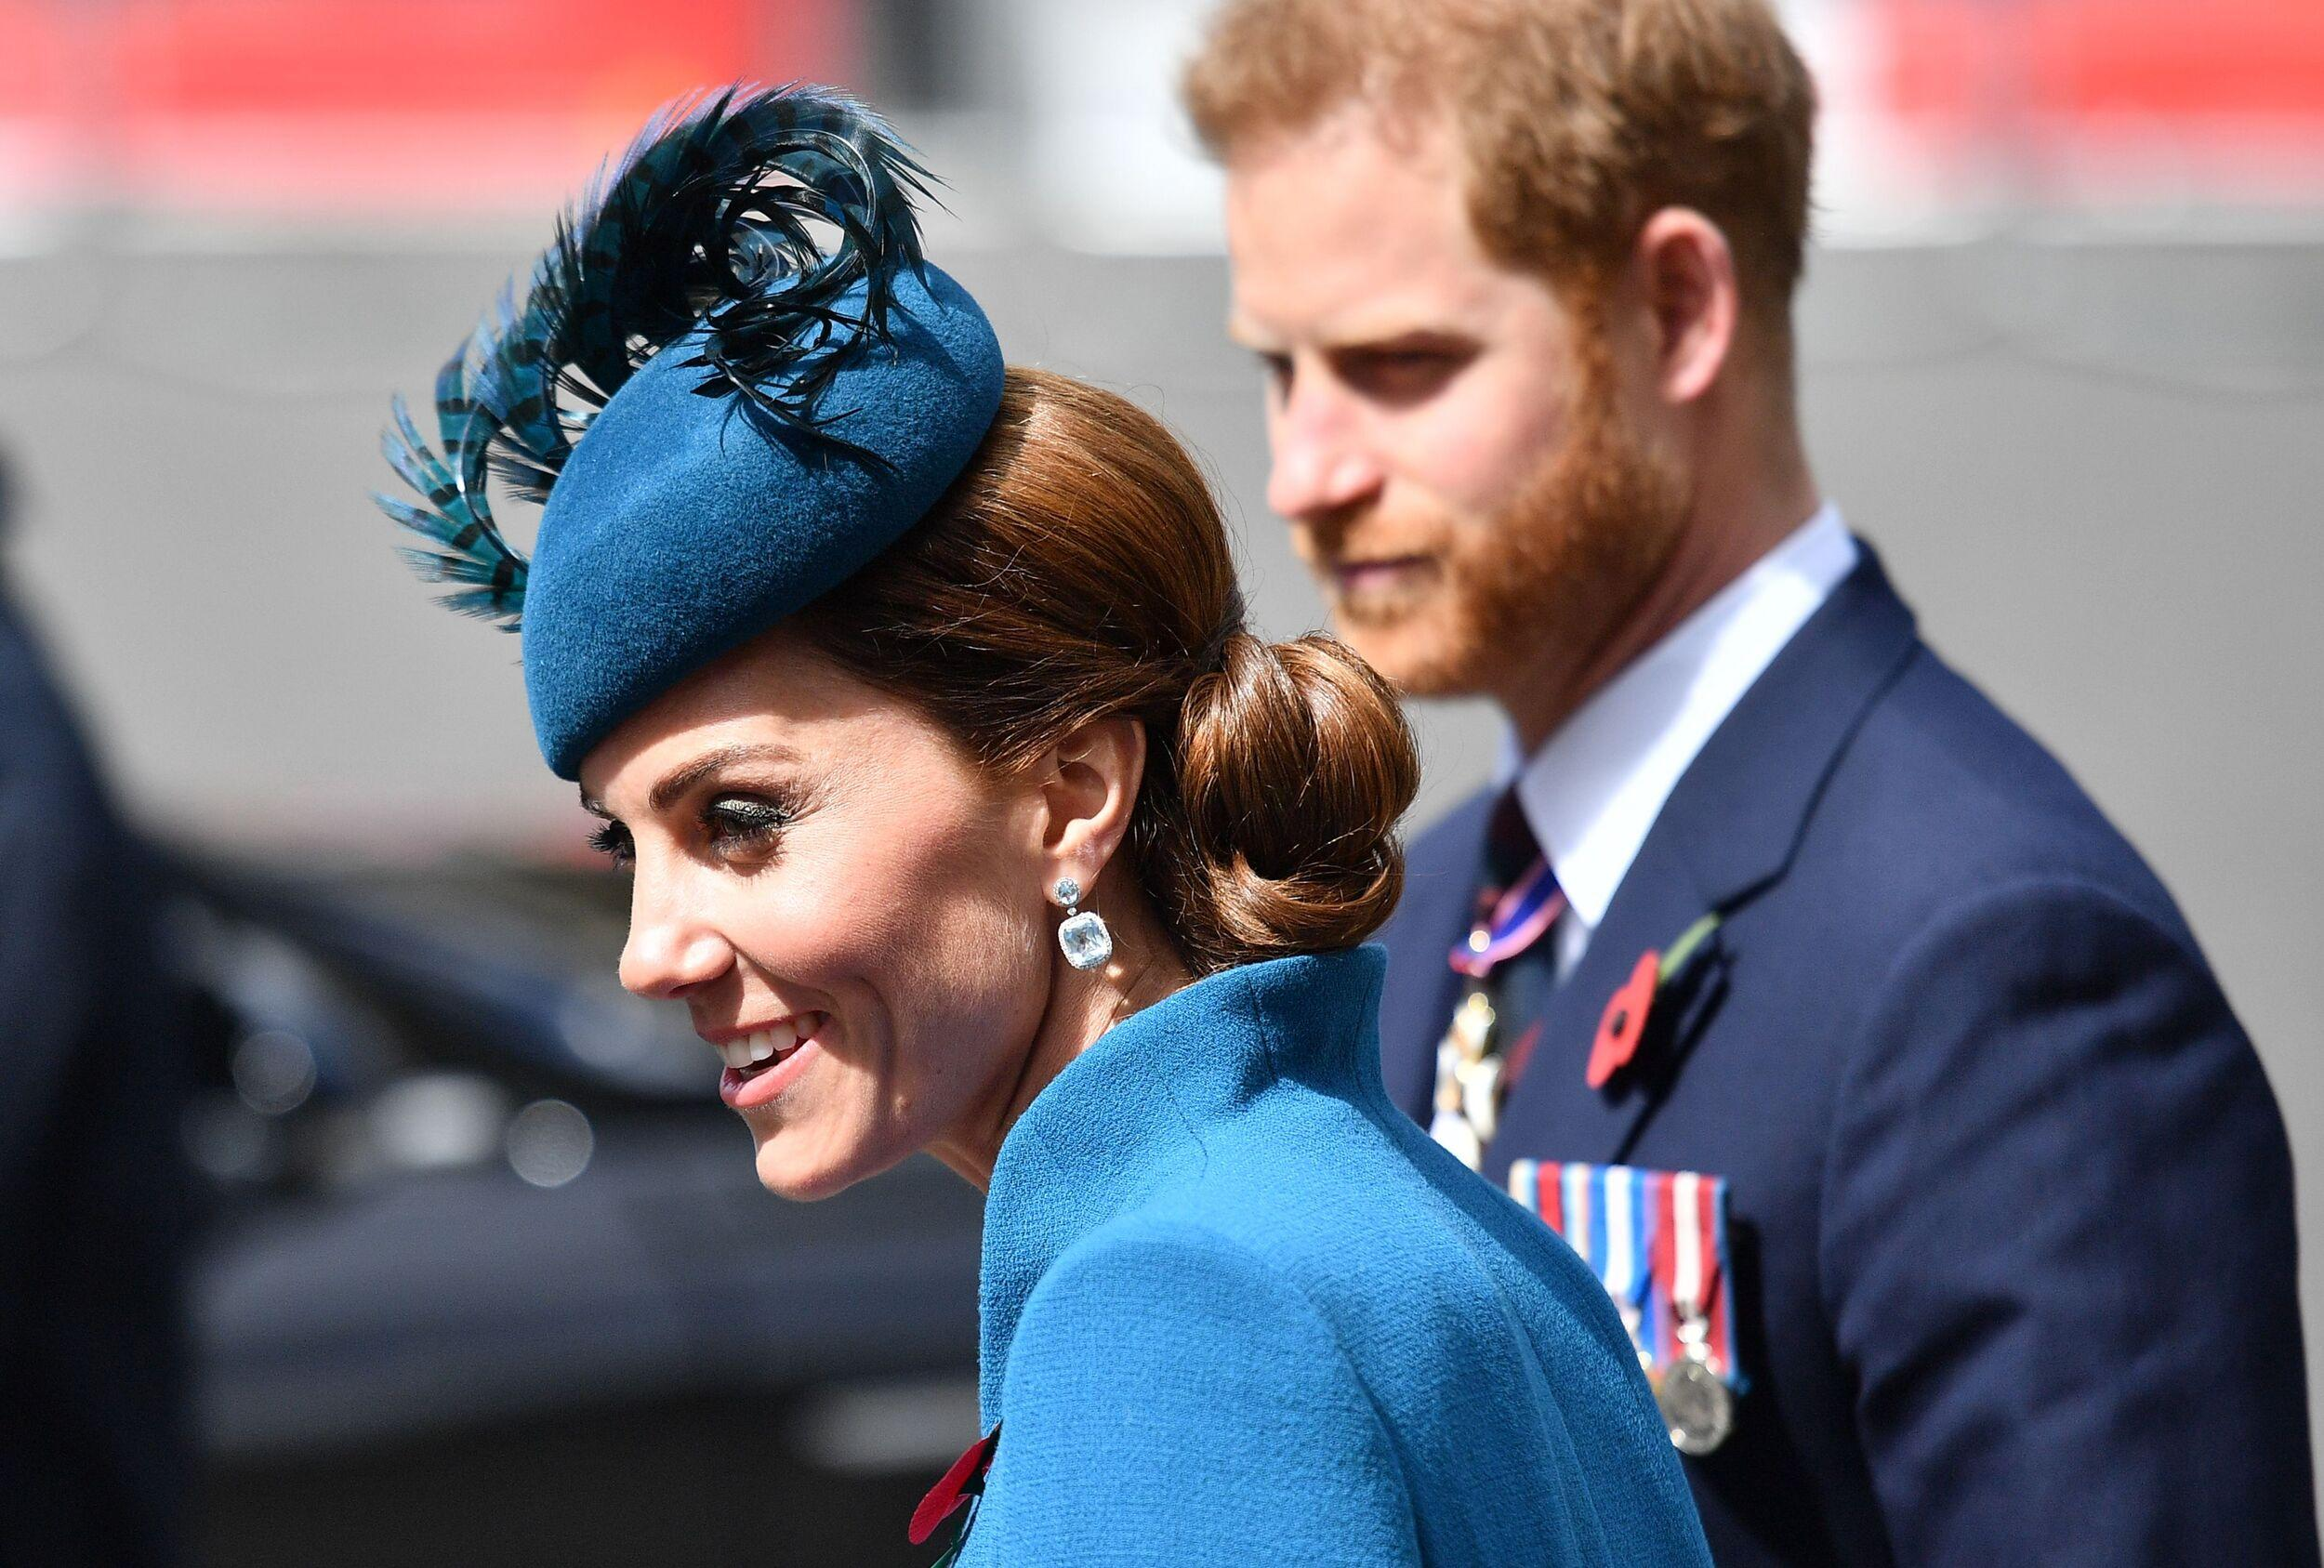 Britain's Catherine, Duchess of Cambridge (L) and Britain's Prince Harry, Duke of Sussex leave after attending a service of commemoration and thanksgiving to mark Anzac Day in Westminster Abbey in London on April 25, 2019. - Anzac Day marks the anniversary of the first major military action fought by Australian and New Zealand forces during the First World War. The Australian and New Zealand Army Corps (ANZAC) landed at Gallipoli in Turkey during World War I. (Photo by Daniel LEAL-OLIVAS / AFP)        (Photo credit should read DANIEL LEAL-OLIVAS/AFP/Getty Images)